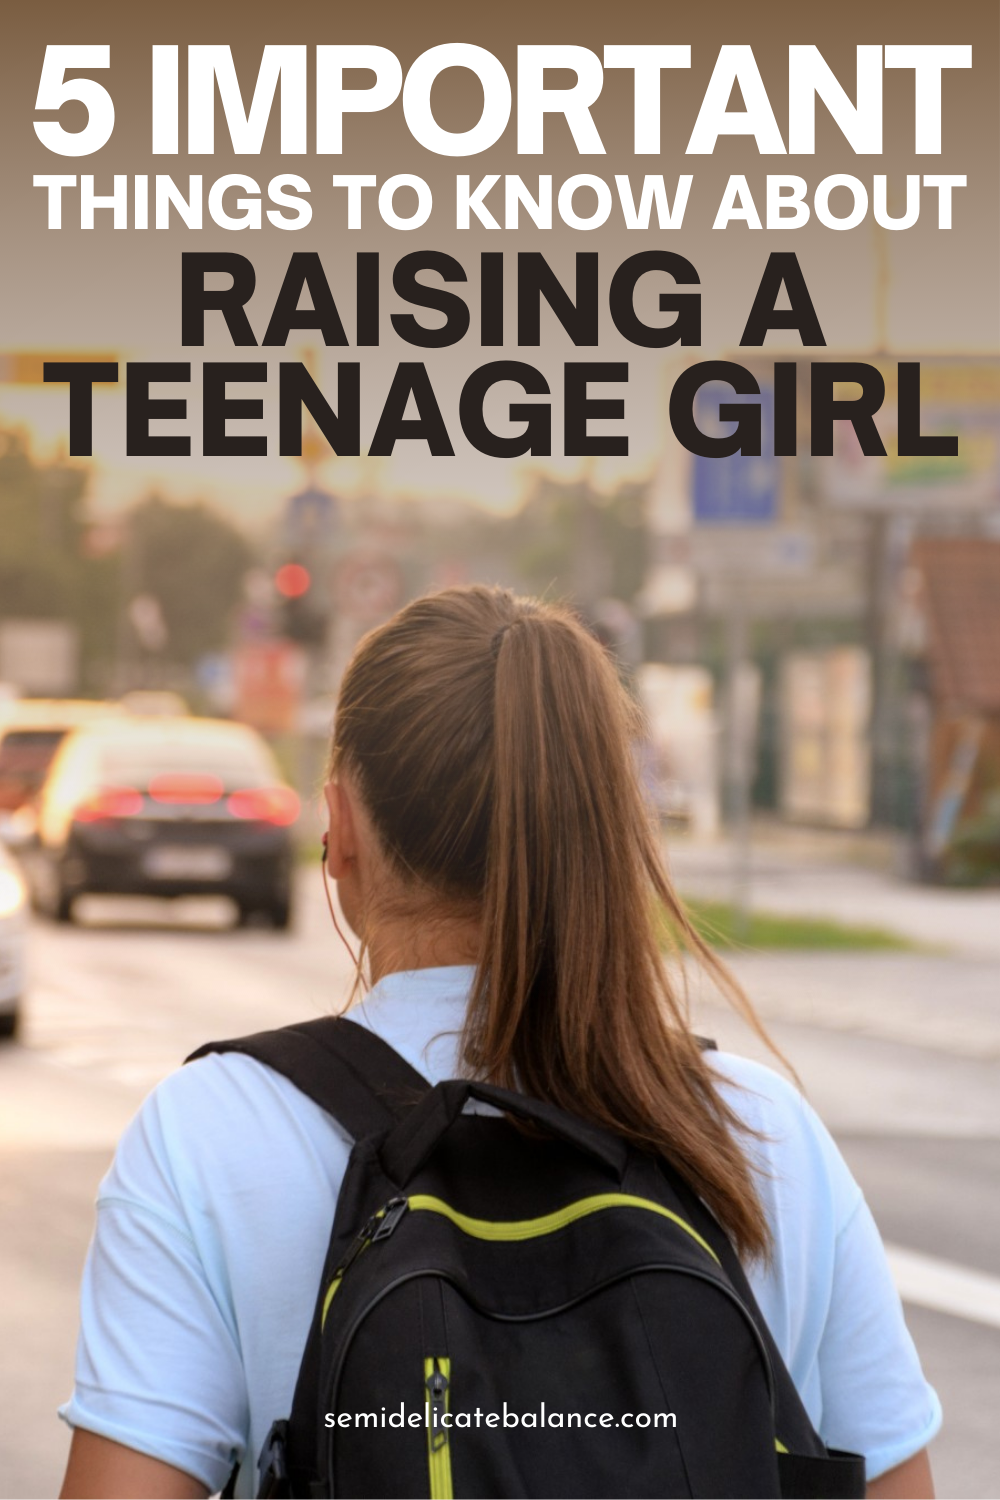 Important Things to Know About Raising a Teenage Daughter, tips for parenting teen girls